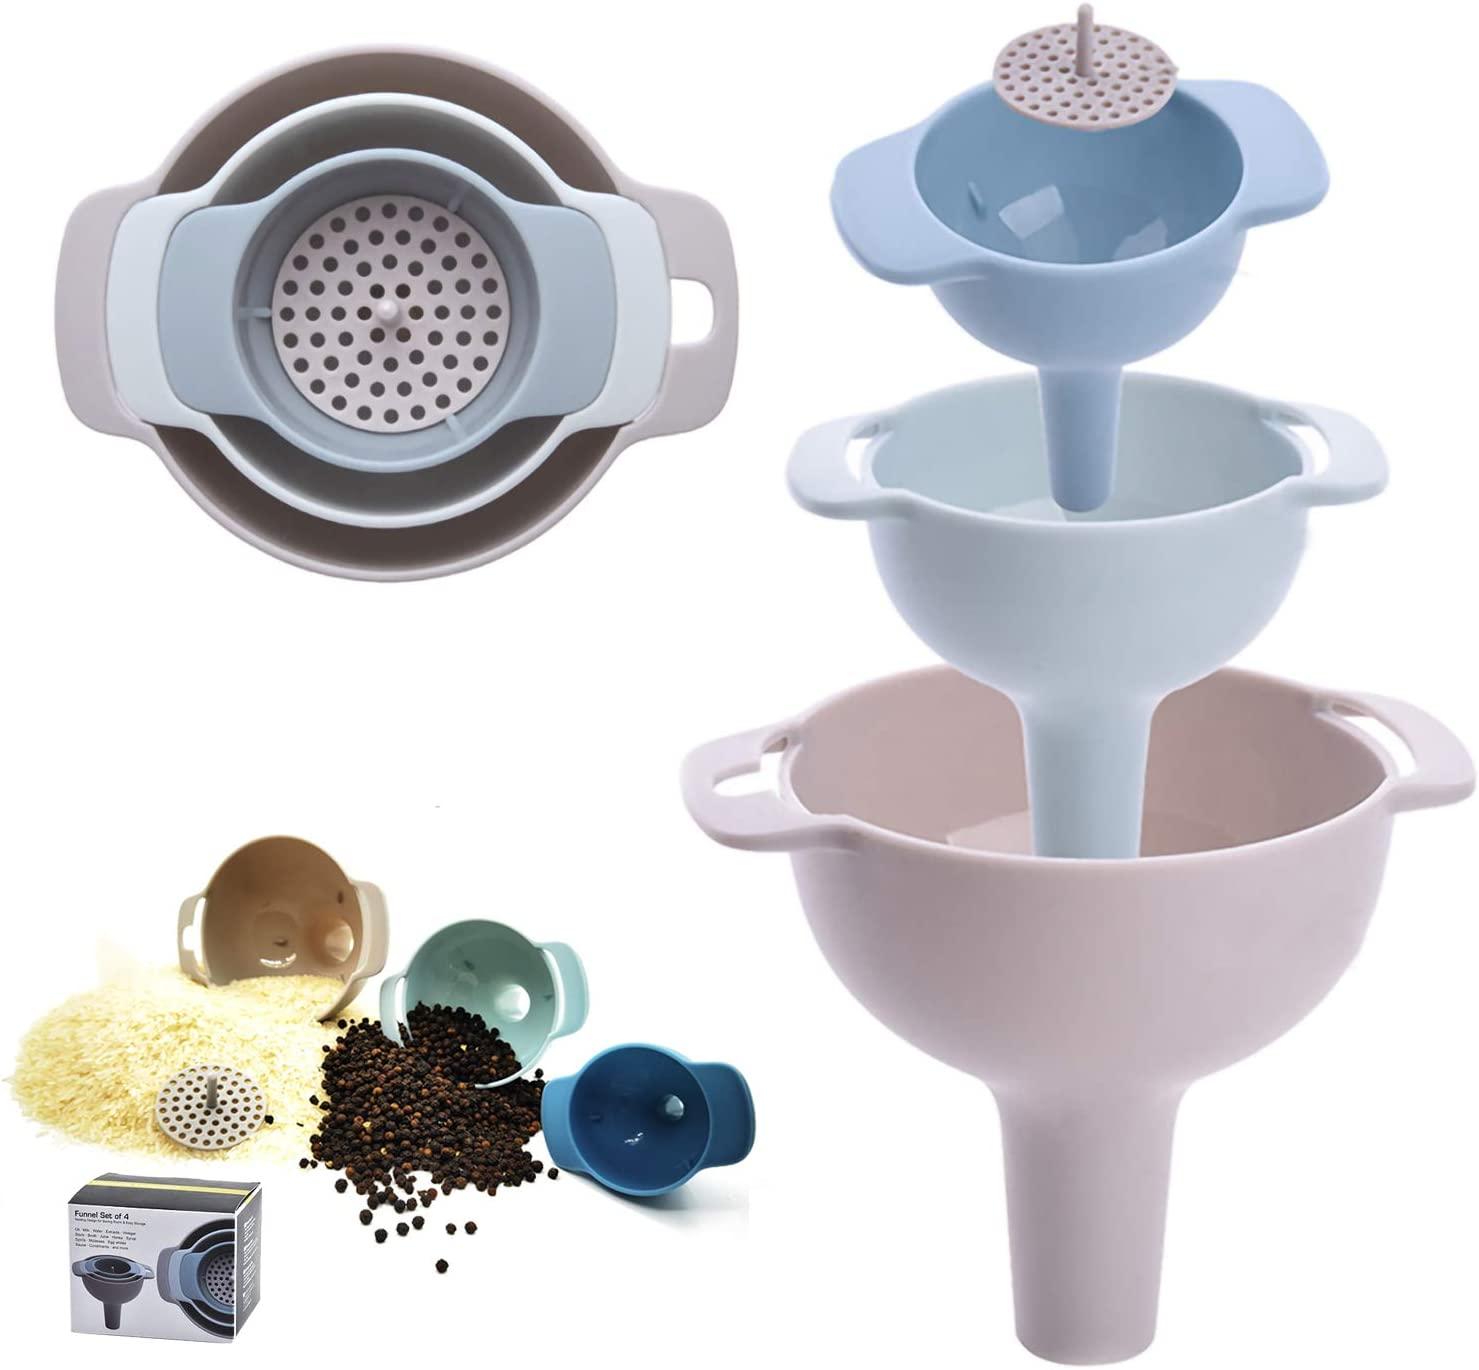 Kitchen Funnels for Filling Bottles,Funnels Set of 3,Oil Funnel,Tough and not easily deformed,Suitable for all kinds of solid food and liquid